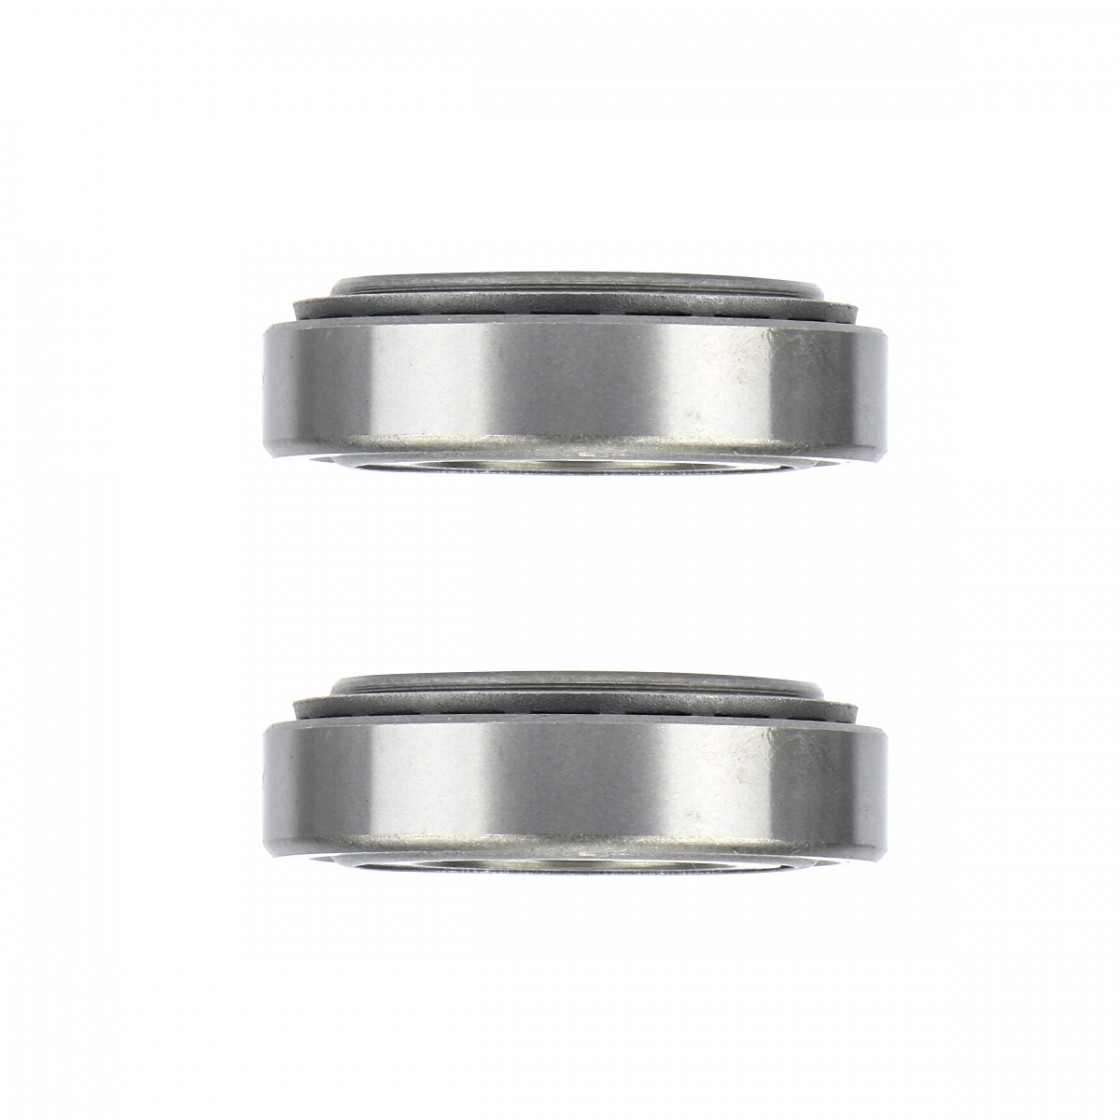 Pillow Block Bearing, Insert Bearing (YAR205-1002F) SKF Type